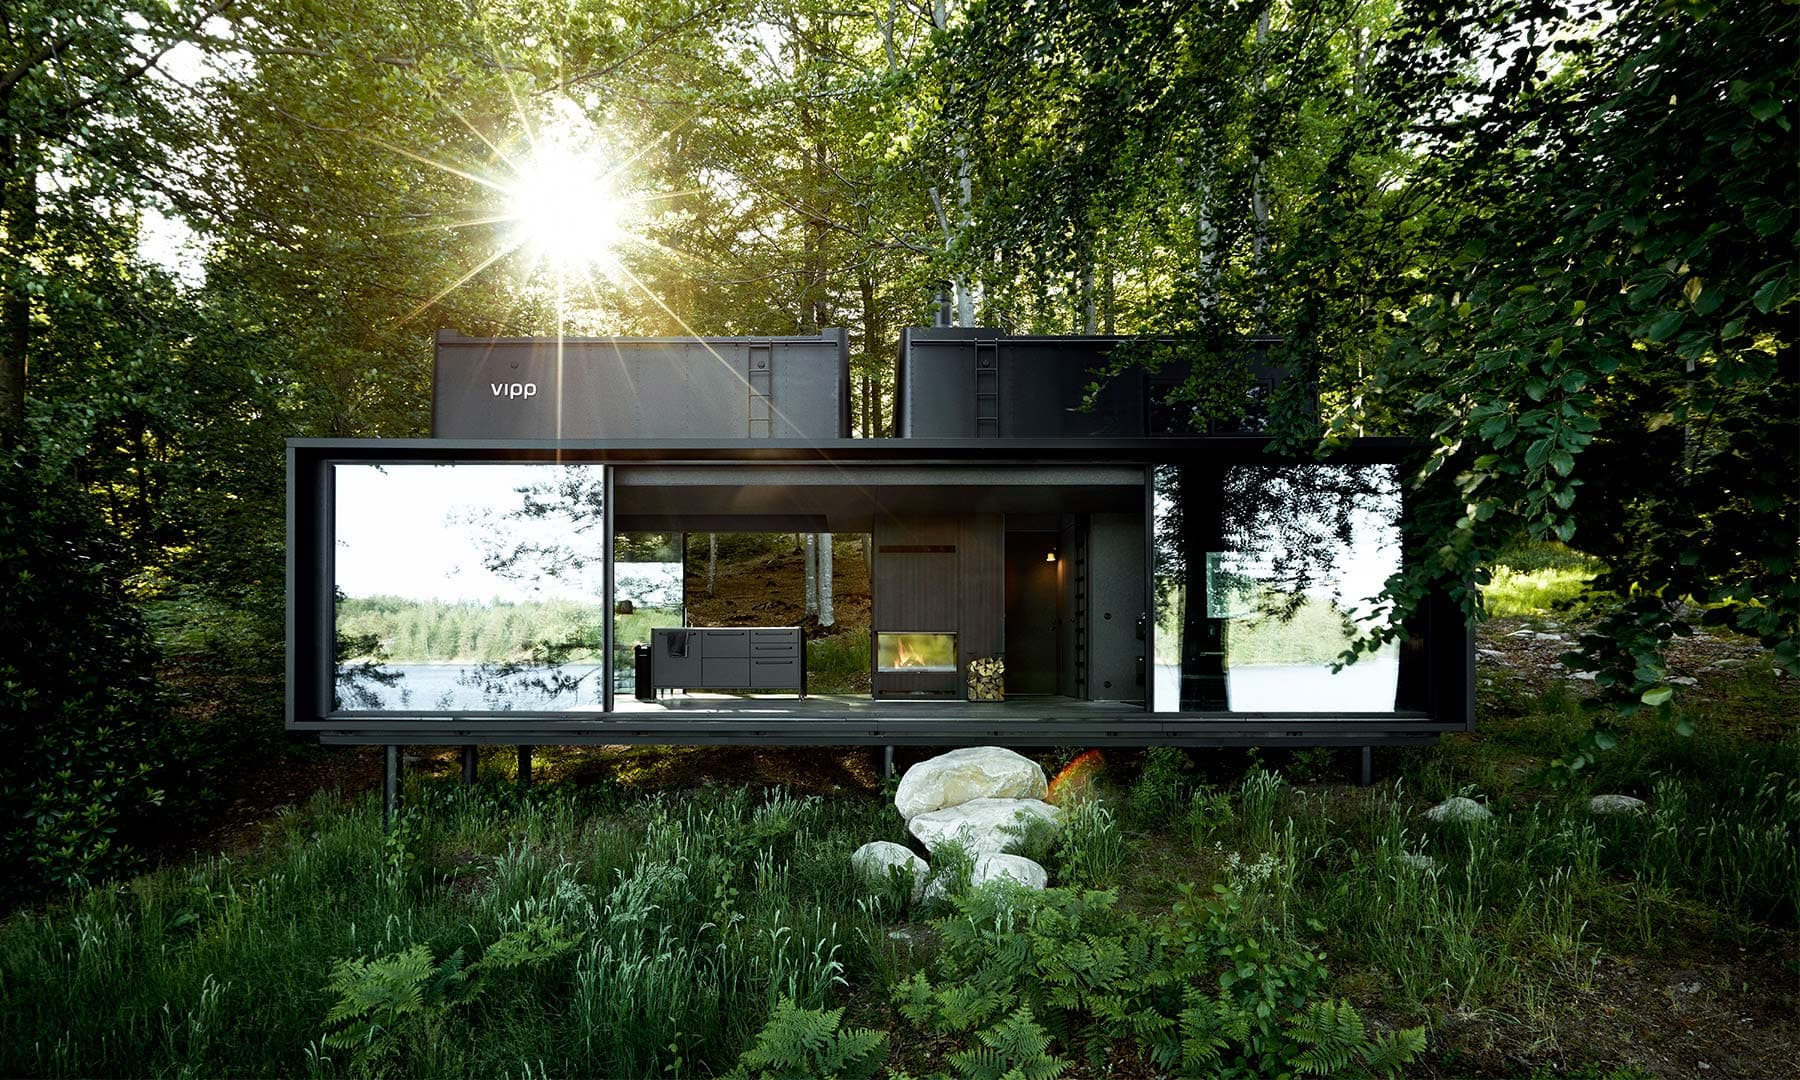 The Vipp Shelter Tiny Prefab